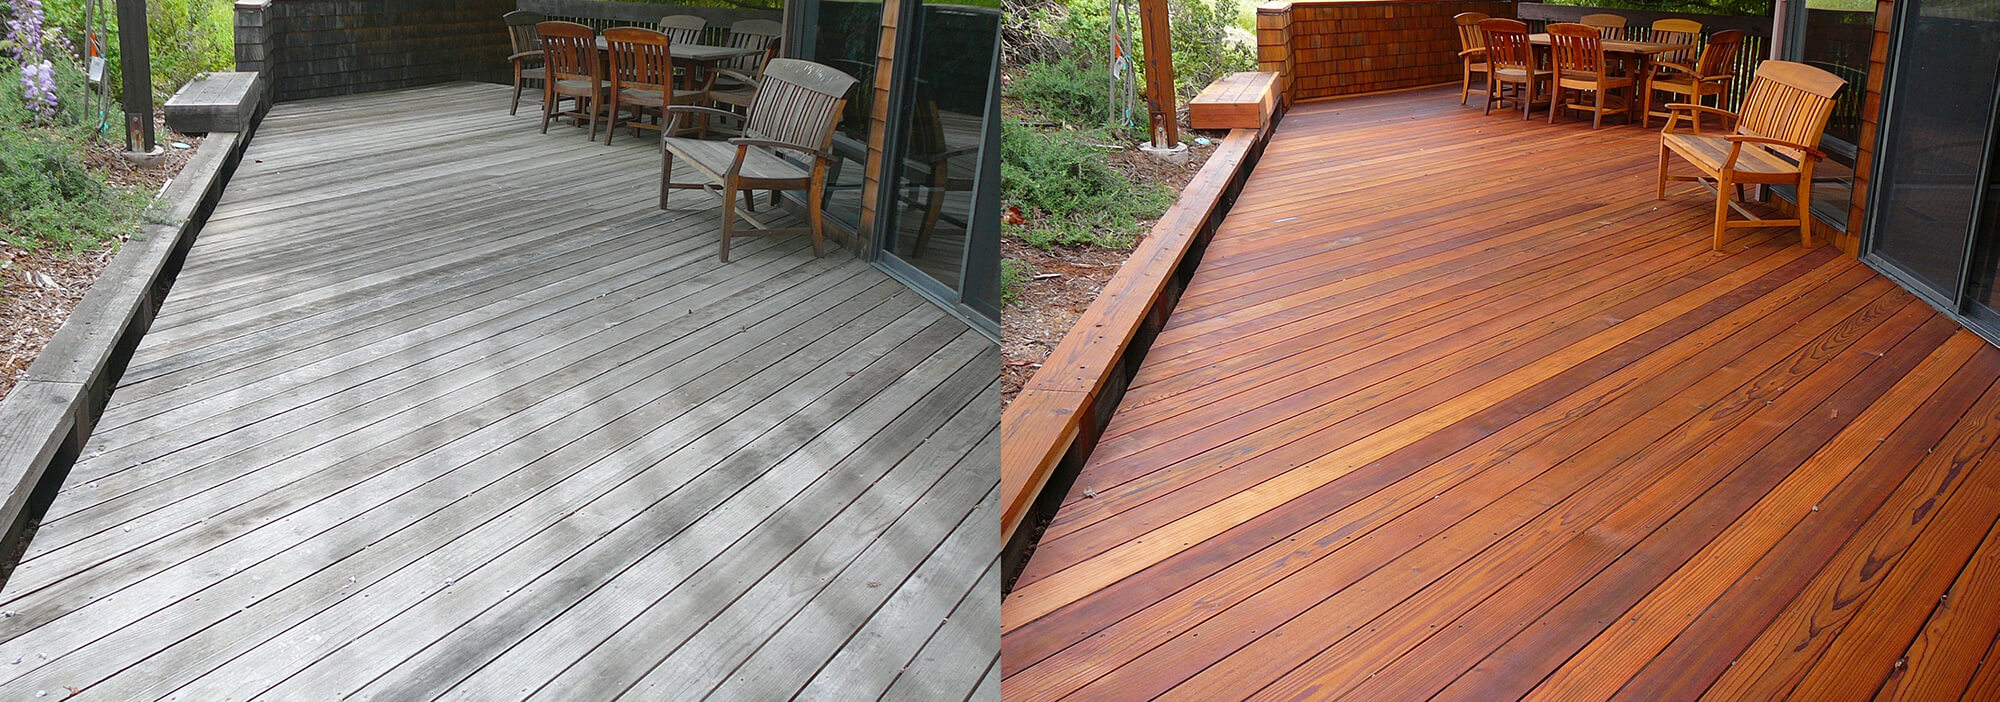 Redwood Deck Before Amp After Cleaning And Preserving Cal